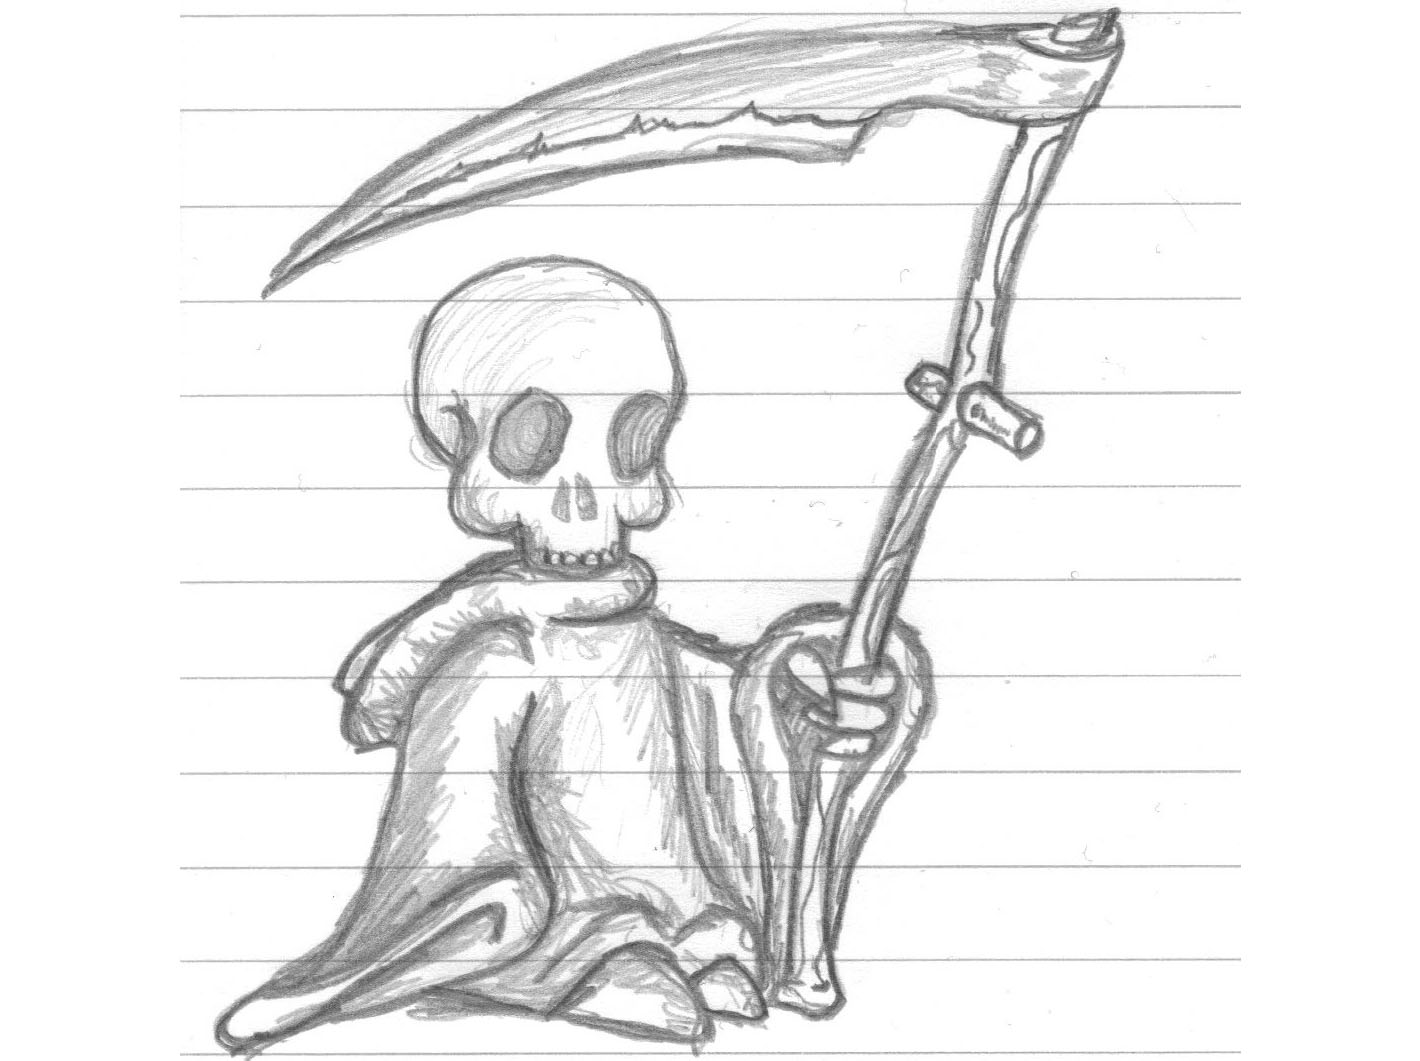 Cool grim reaper pencil drawings easy sketch coloring page for Cool drawings to draw in pencil